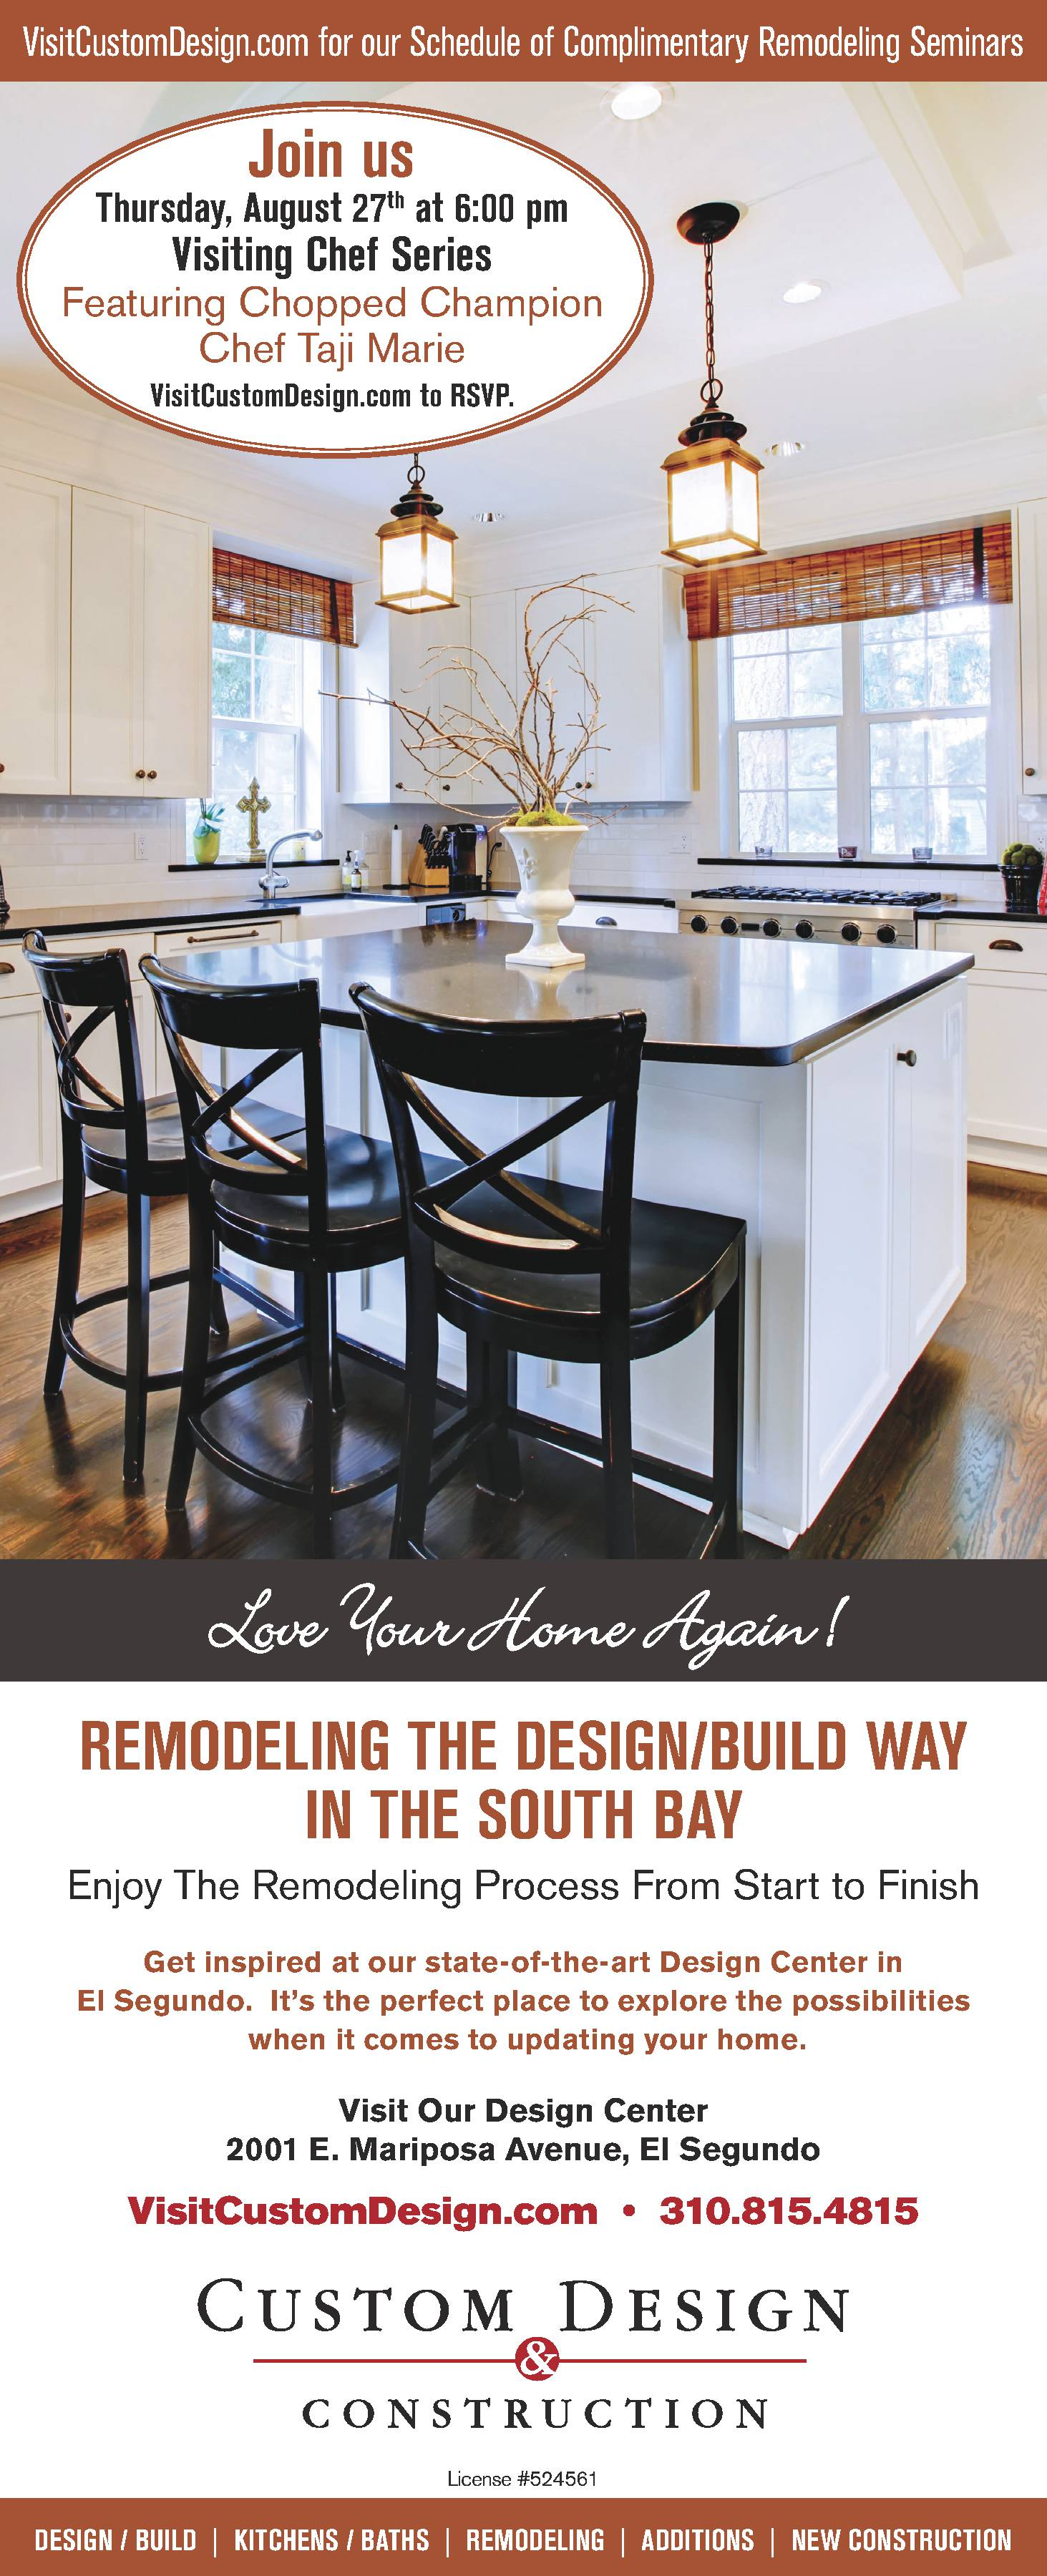 Paid Advertisement Remodeling Seminar Featuring Chopped Champion